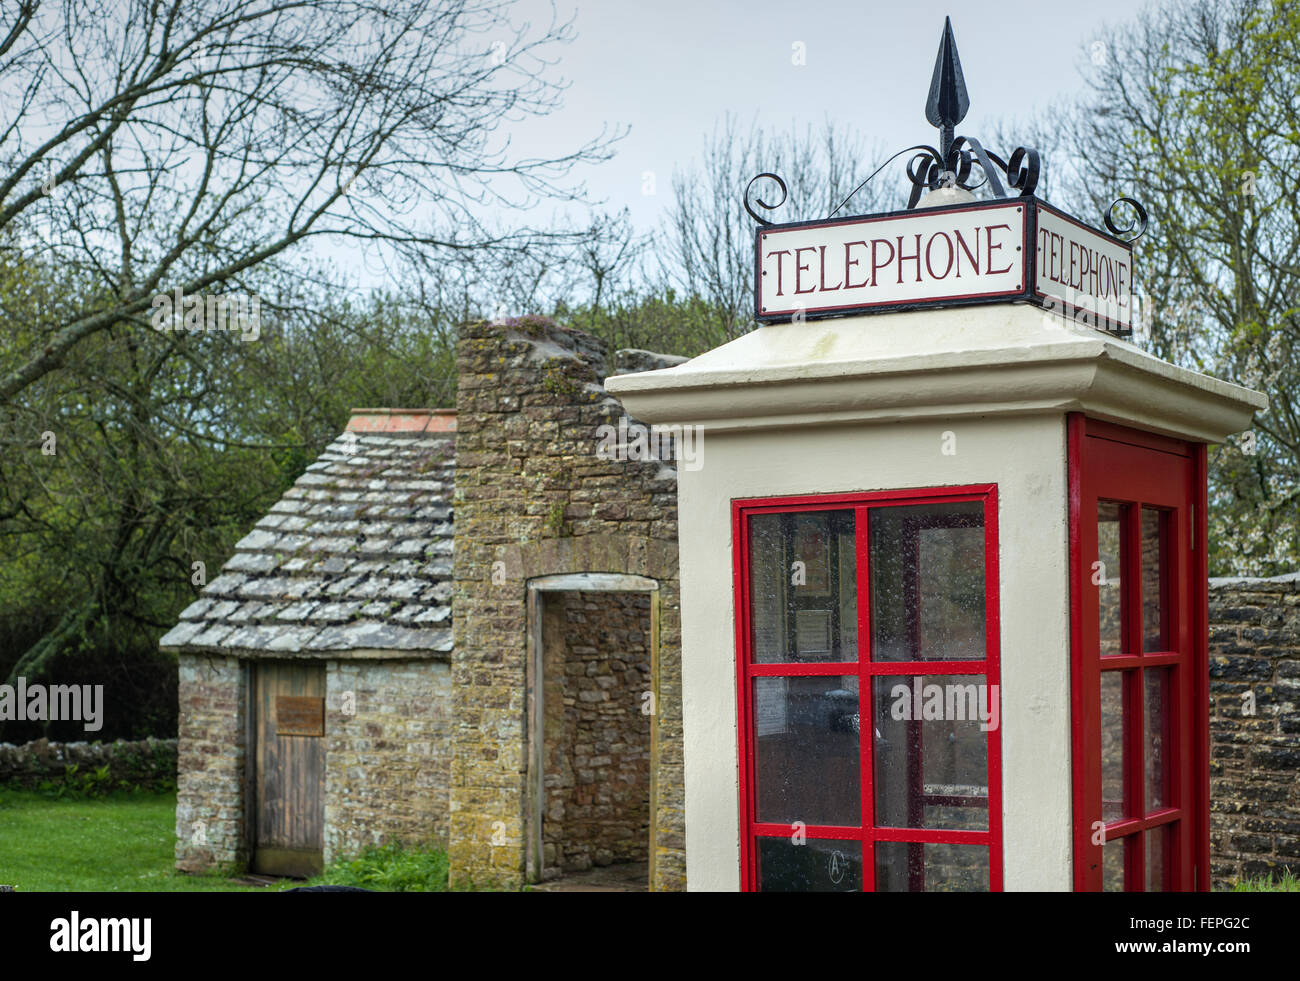 Old-fashioned telephone box in the abandoned village of Tyneham in Dorset, England, UK - Stock Image